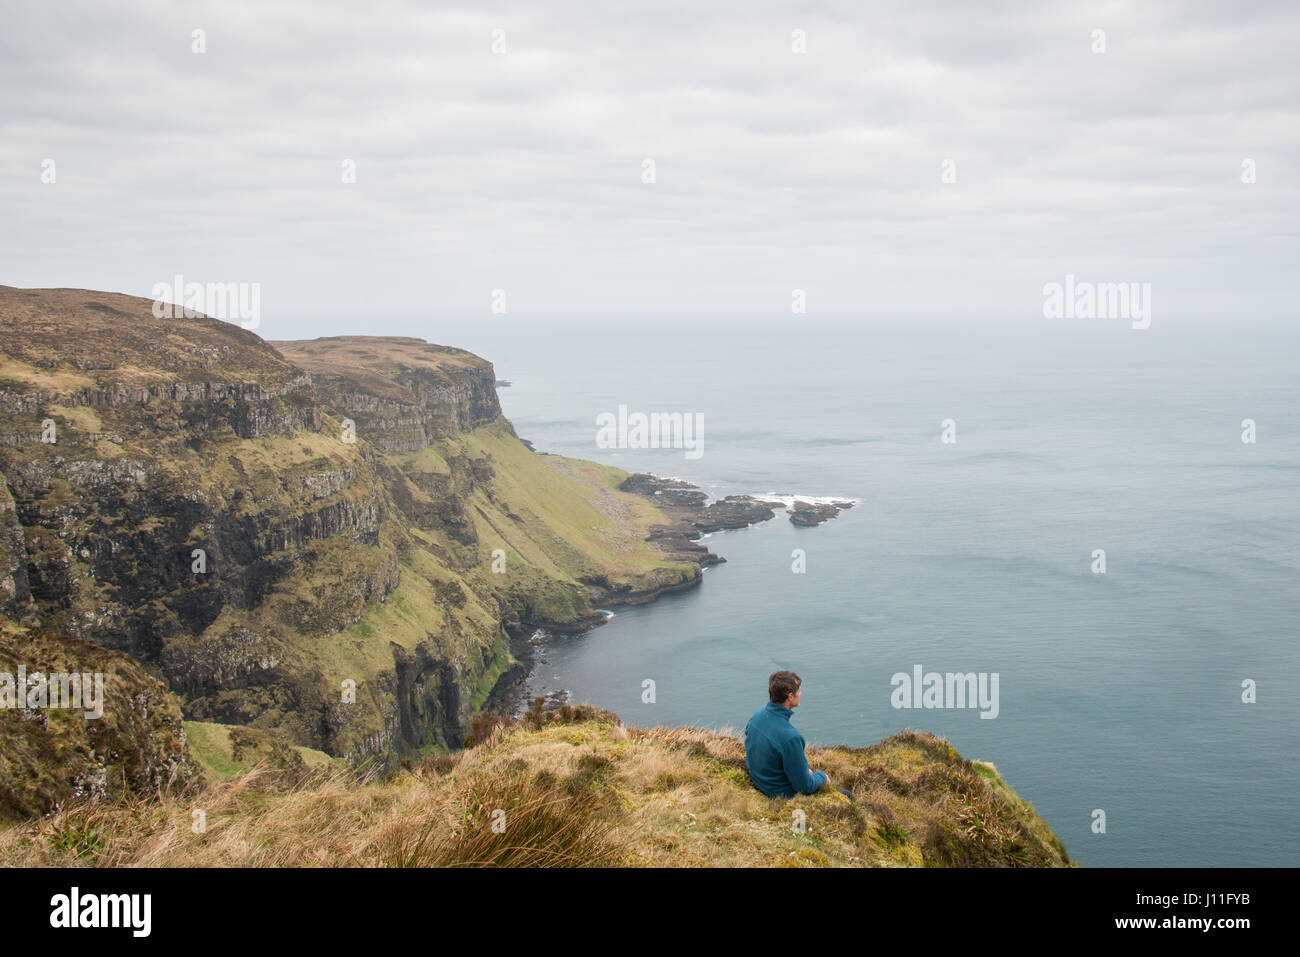 Admiring the view from Cliffs on the north coast of the Island of Canna, inner hebrides, Scotland. - Stock Image